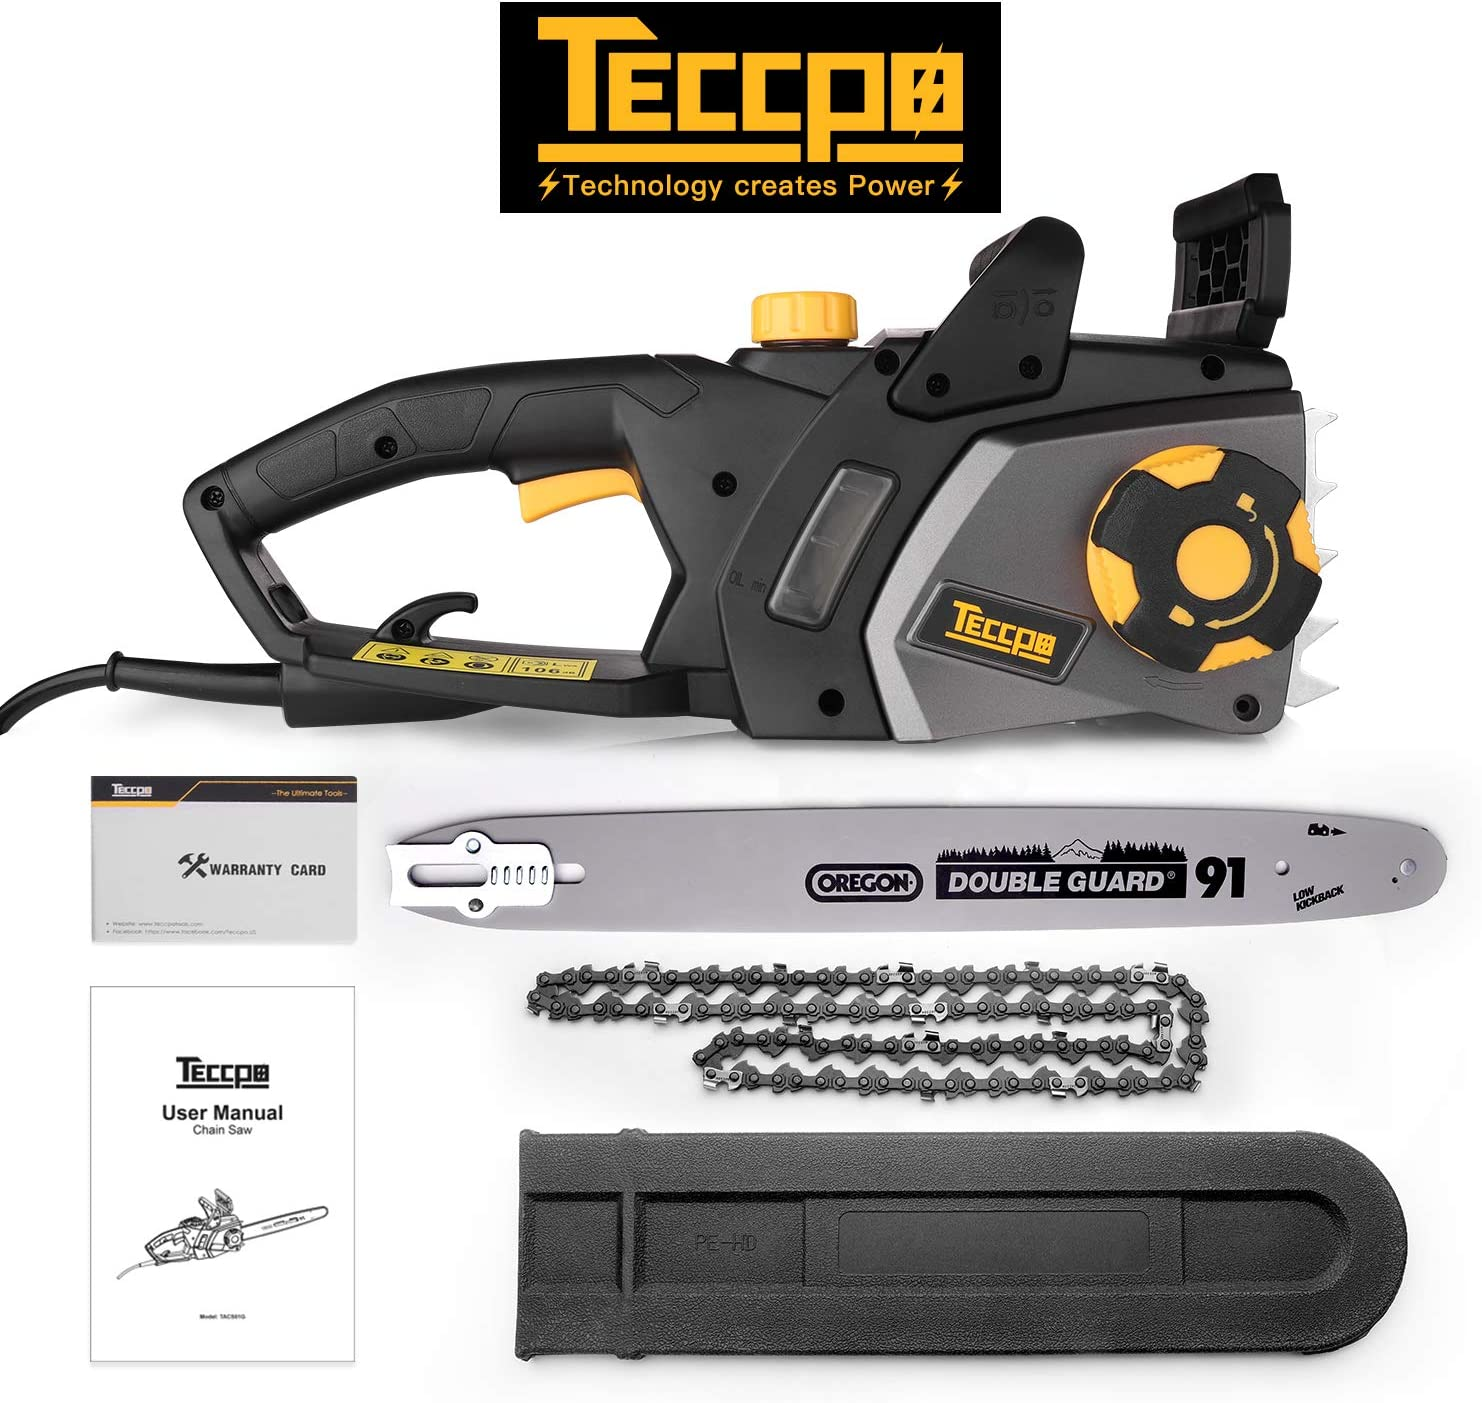 TECCPO TACS01G Chainsaws product image 7